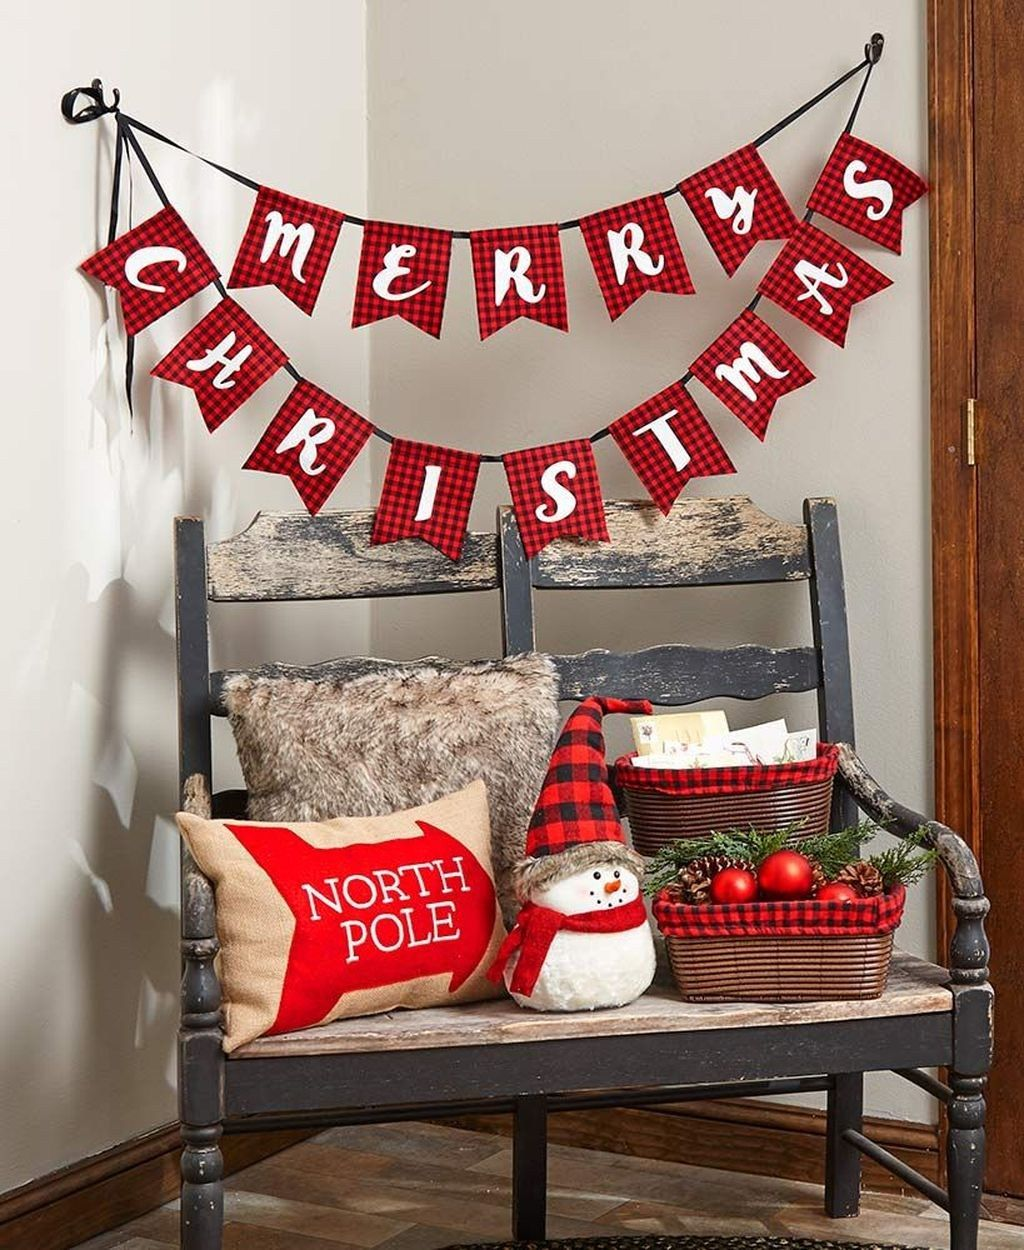 44 Stunning Christmas Decor Ideas With Farmhouse Style For Living Room images